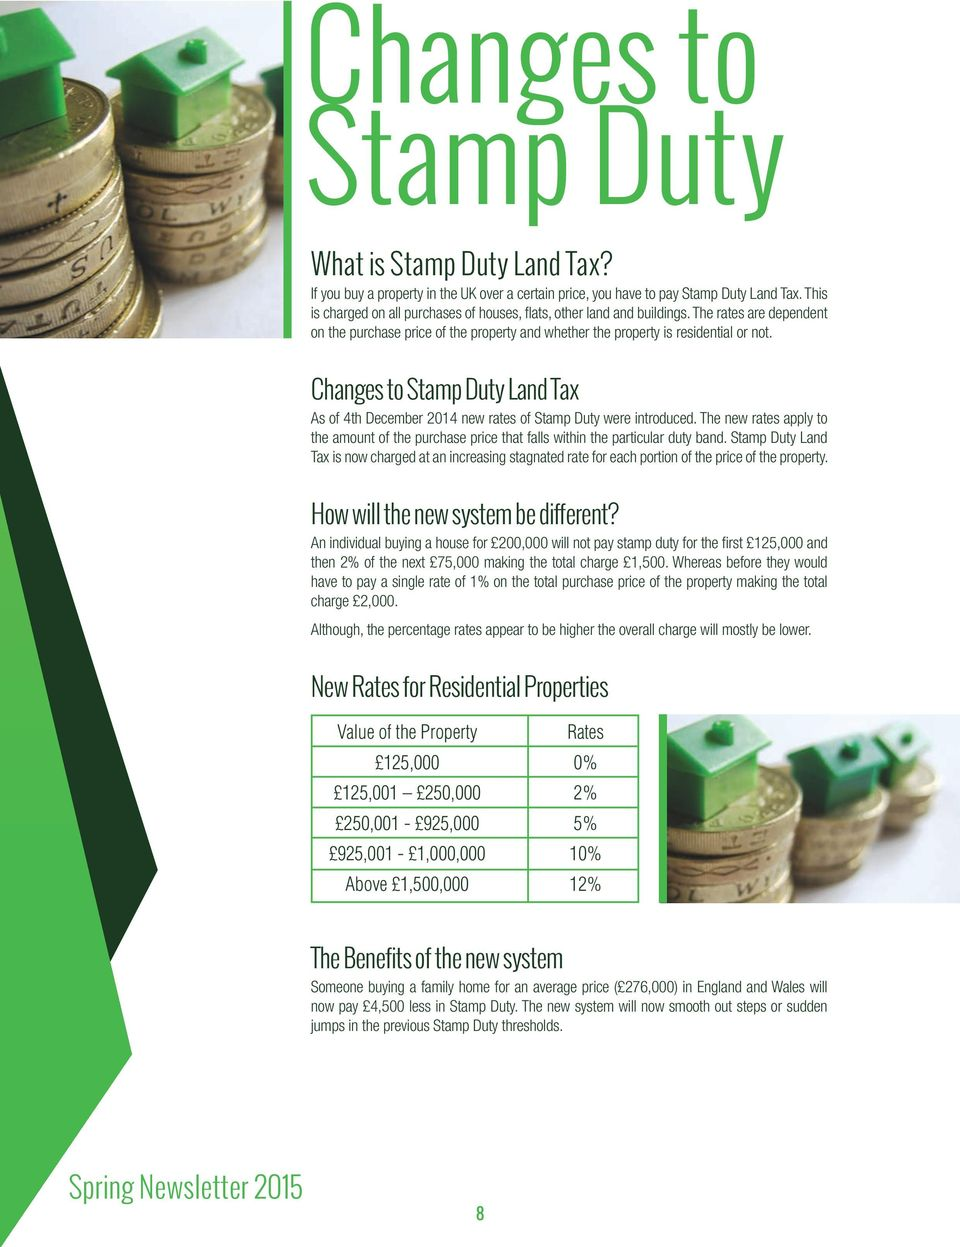 Changes to Stamp Duty Land Tax As of 4th December 2014 new rates of Stamp Duty were introduced. The new rates apply to the amount of the purchase price that falls within the particular duty band.